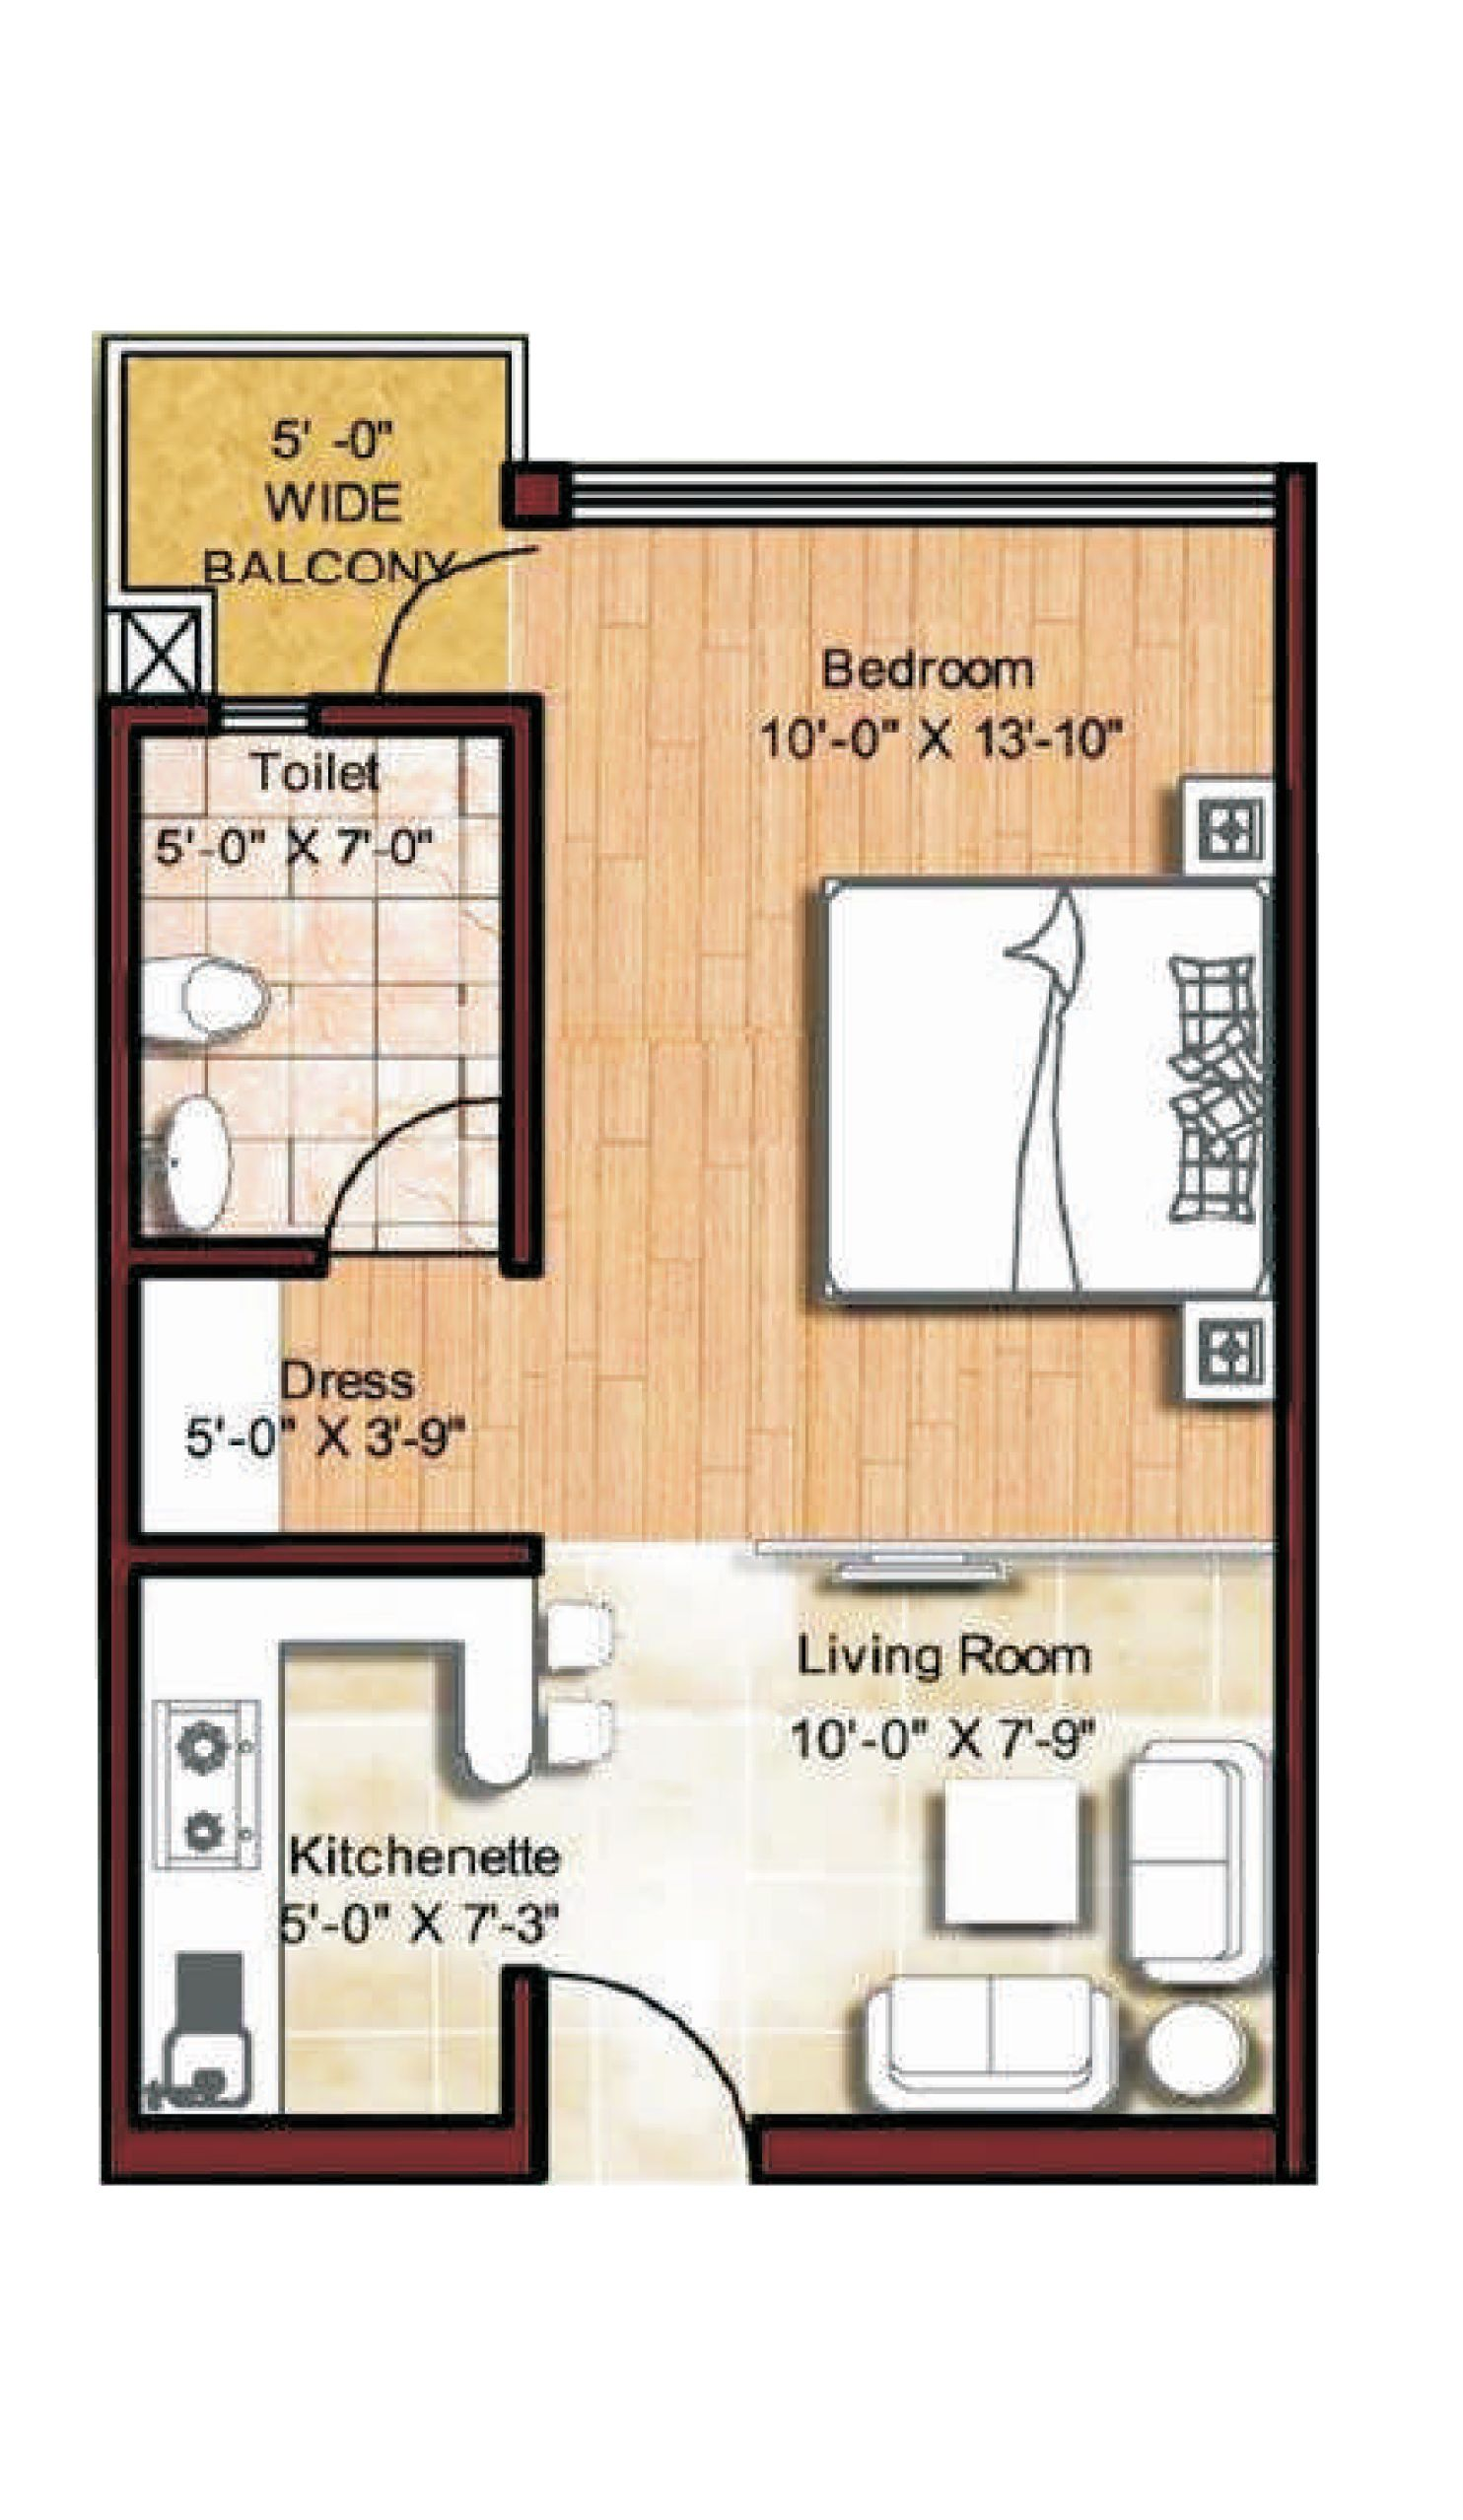 Studio Apartment Architectural Plans micro apartments floor plans | floor plan | tiny spaces